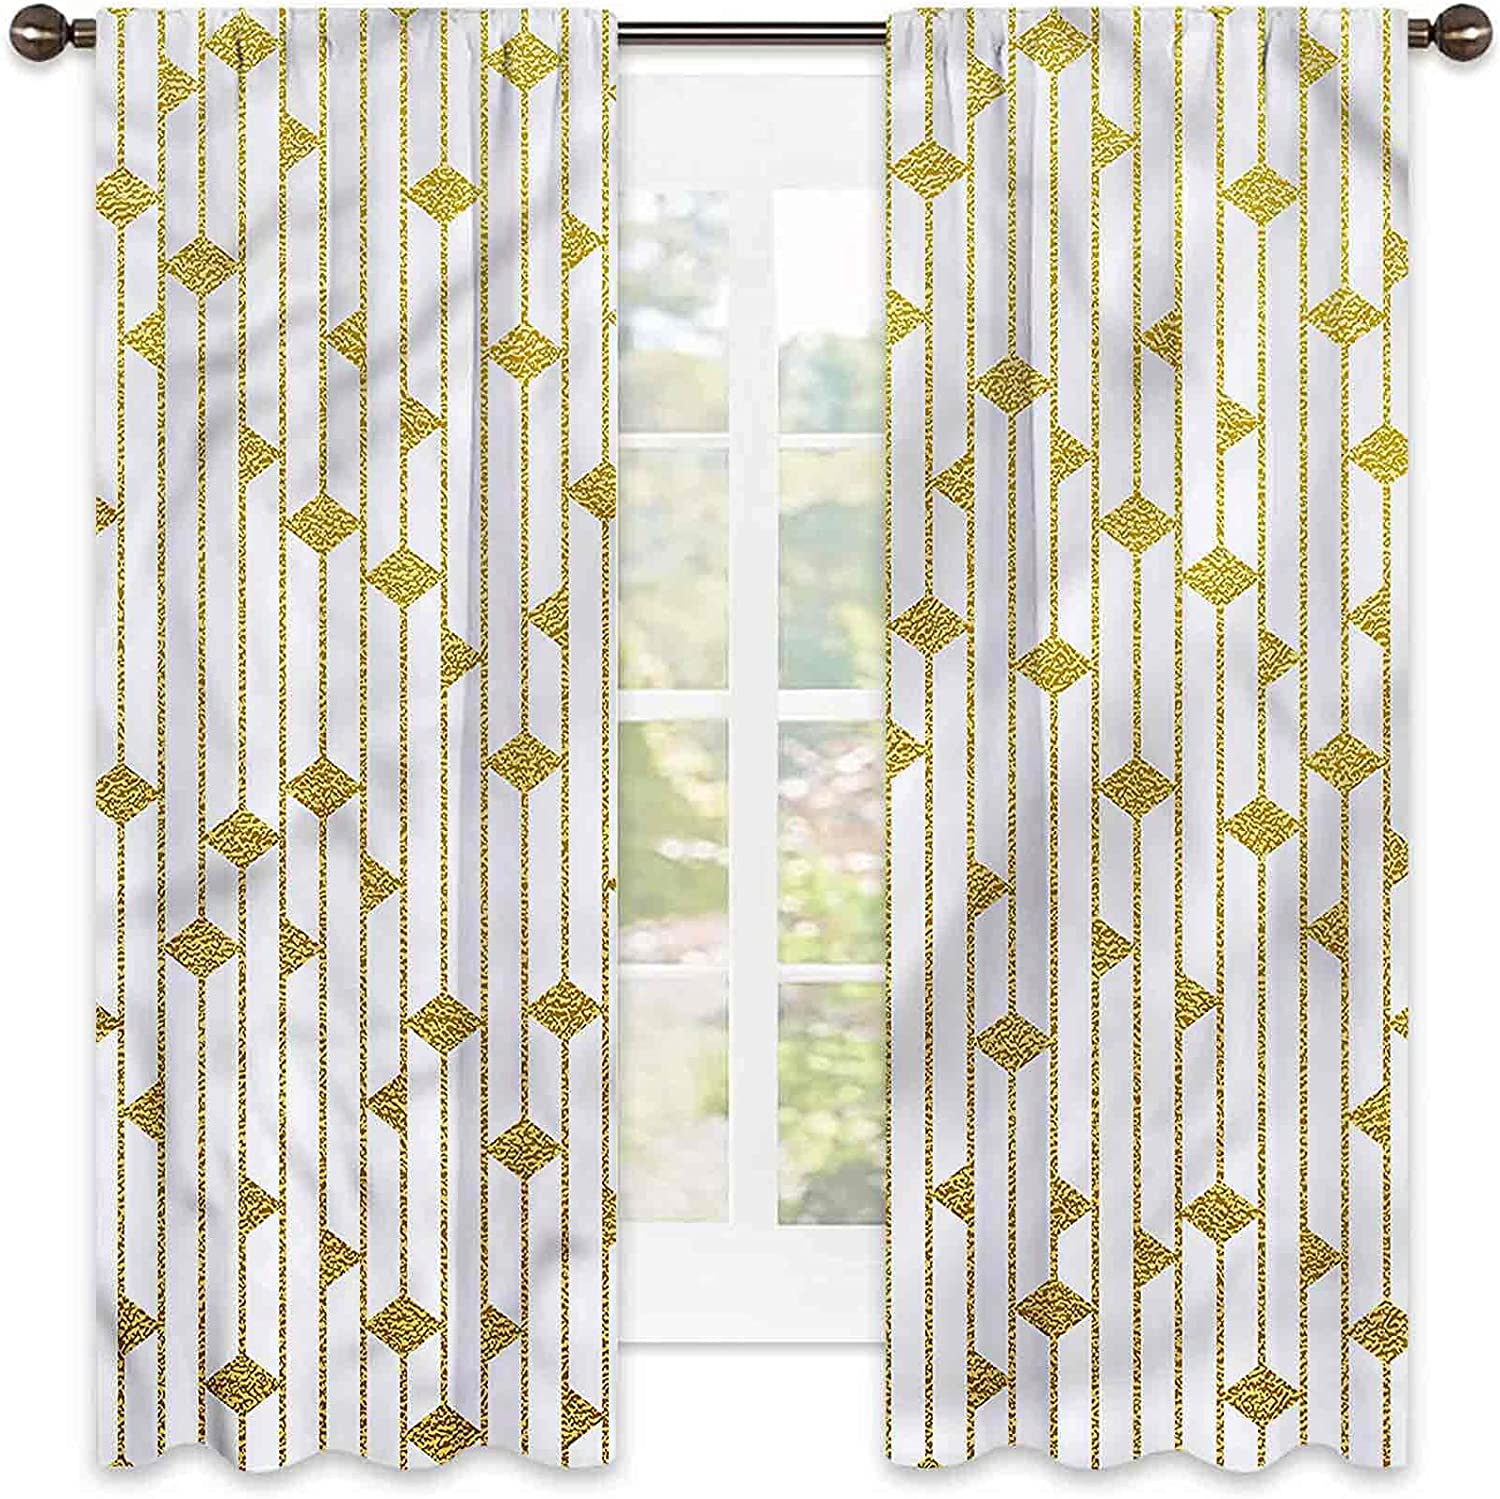 Courier shipping free Geometric Heat Insulation online shopping Curtain Vertical Stripes Wa Triangle